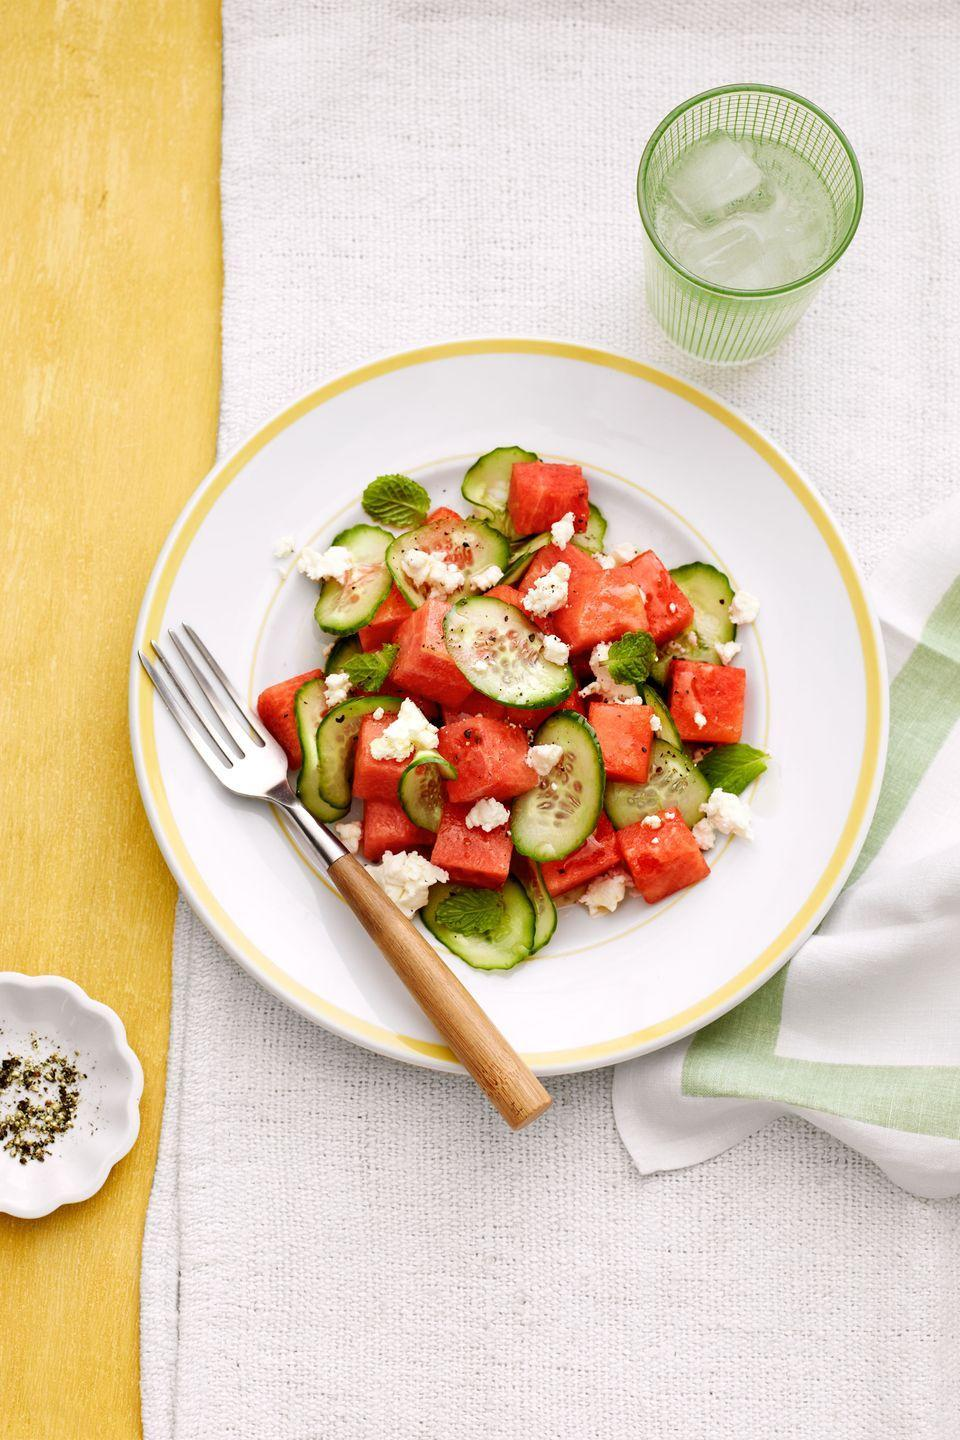 "Light, juicy, and amazingly refreshing, this cool salad is just the thing to serve outside on a scorching summer day. <a href=""https://www.countryliving.com/food-drinks/recipes/a5423/watermelon-cucumber-salad-recipe-clx0714/"" rel=""nofollow noopener"" target=""_blank"" data-ylk=""slk:Get the recipe."" class=""link rapid-noclick-resp""><strong>Get the recipe.</strong></a>"